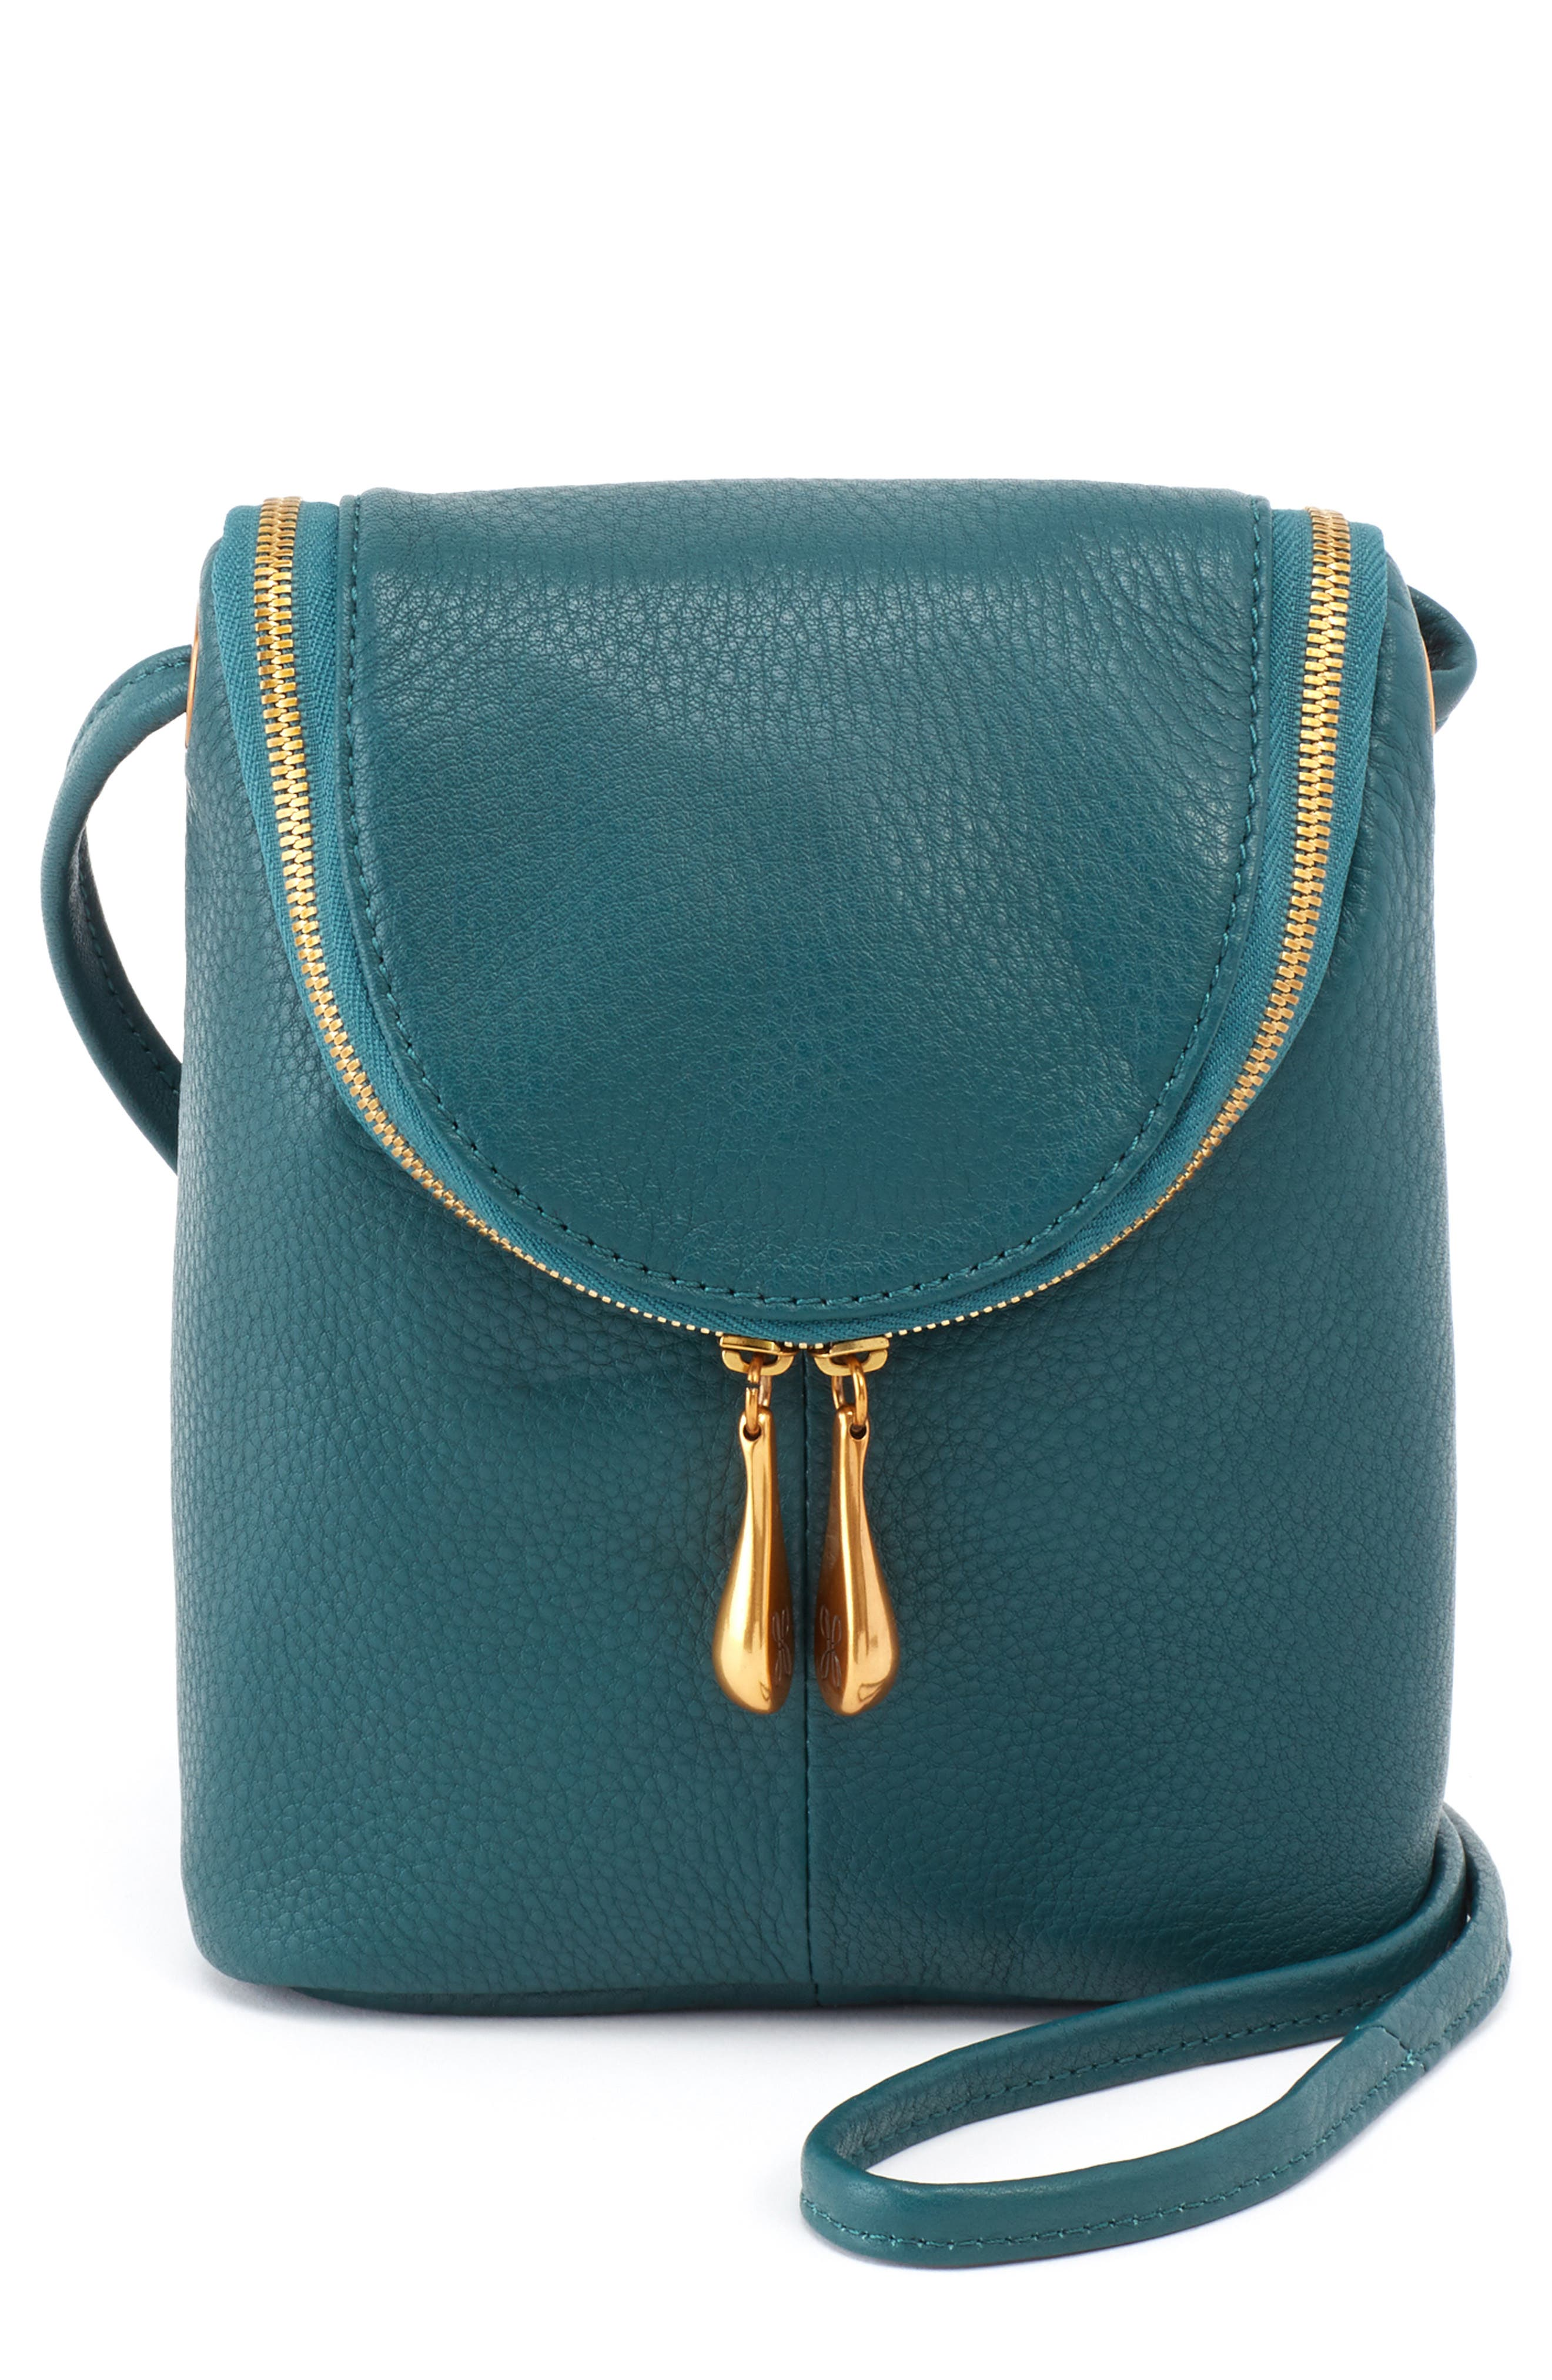 Fern Saddle Bag,                         Main,                         color, DARK TEAL